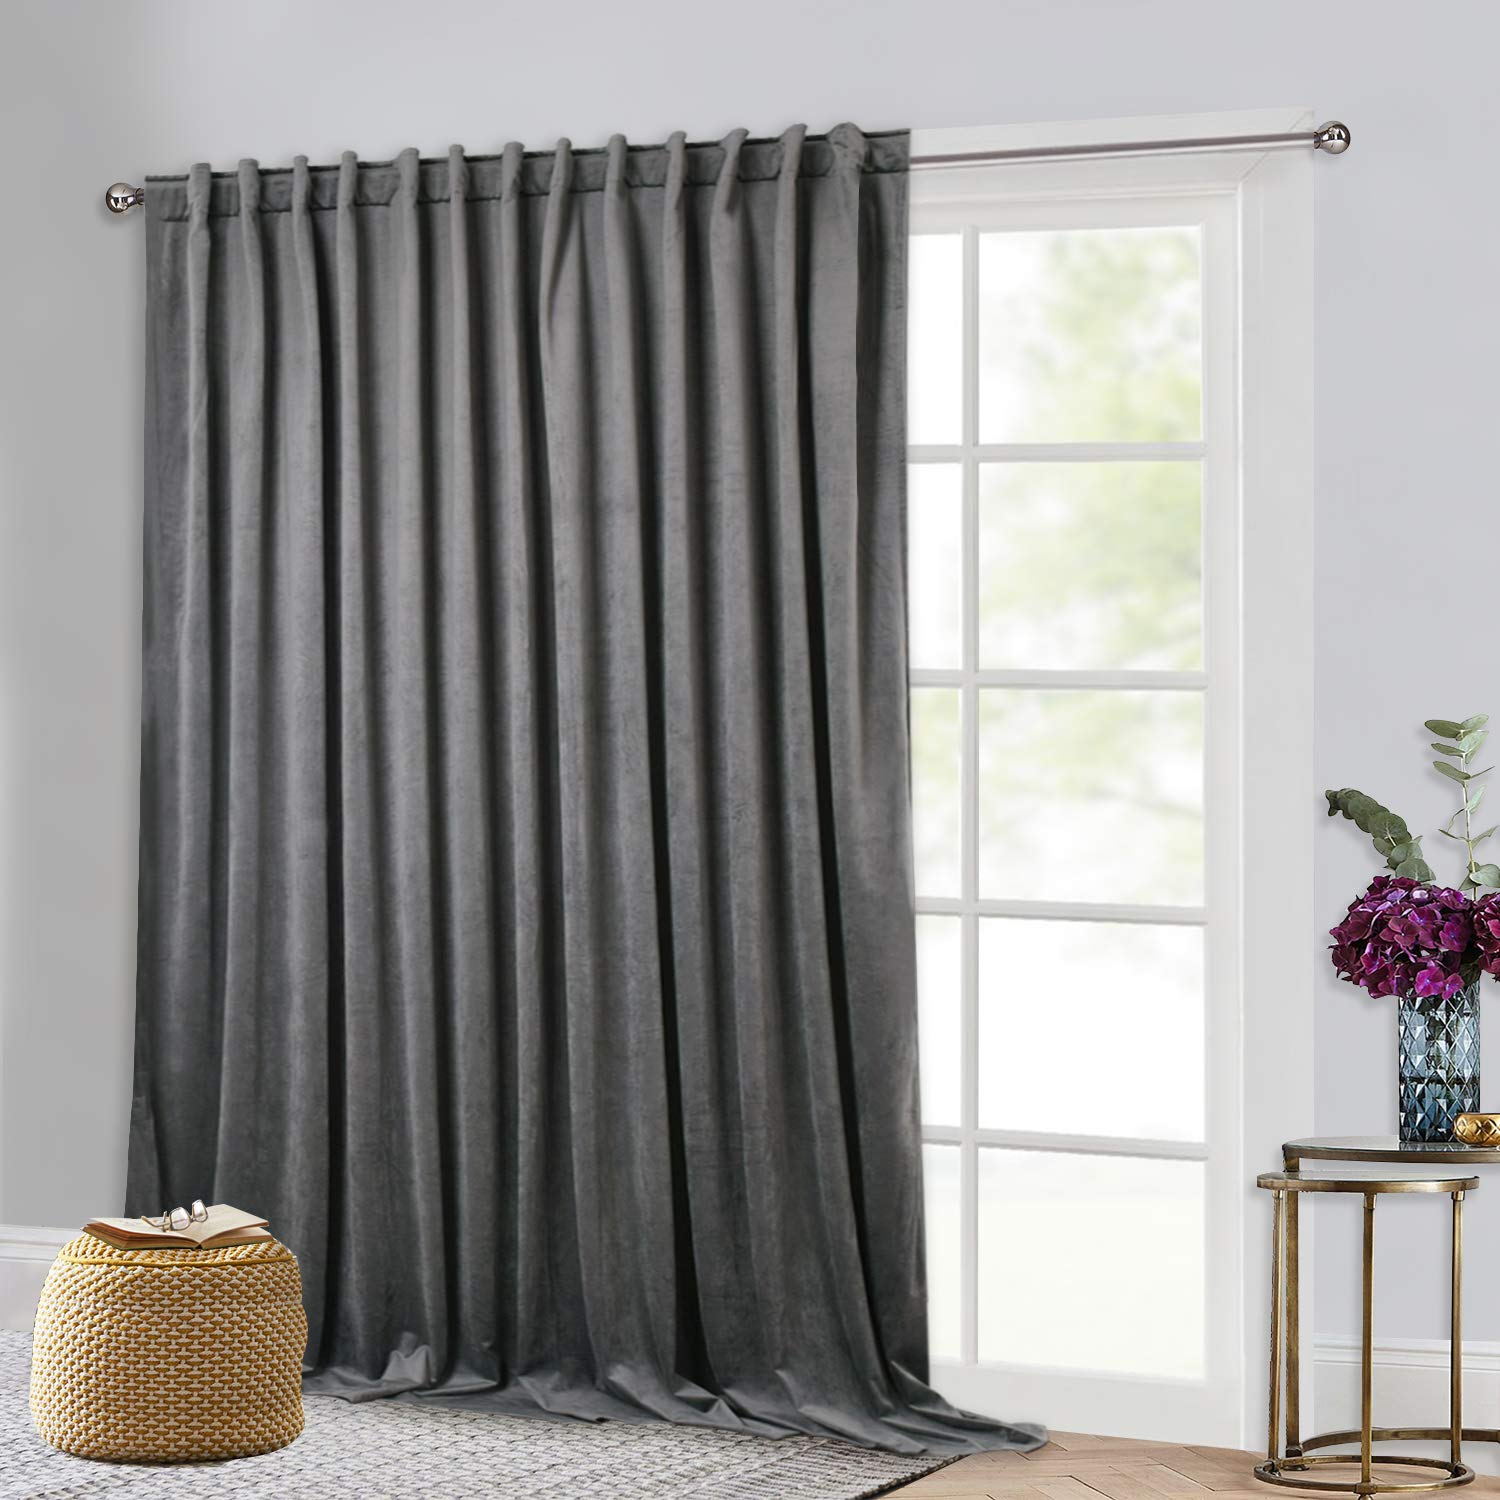 Grey W100 x L120  greenical Blinds for Patio Door - Extra Wide Velvet Drapes Light Dimming Sliding Door Covering Curatin Panel for Theater Master Bedroom, 100  Width x 84  Length, Single Panel